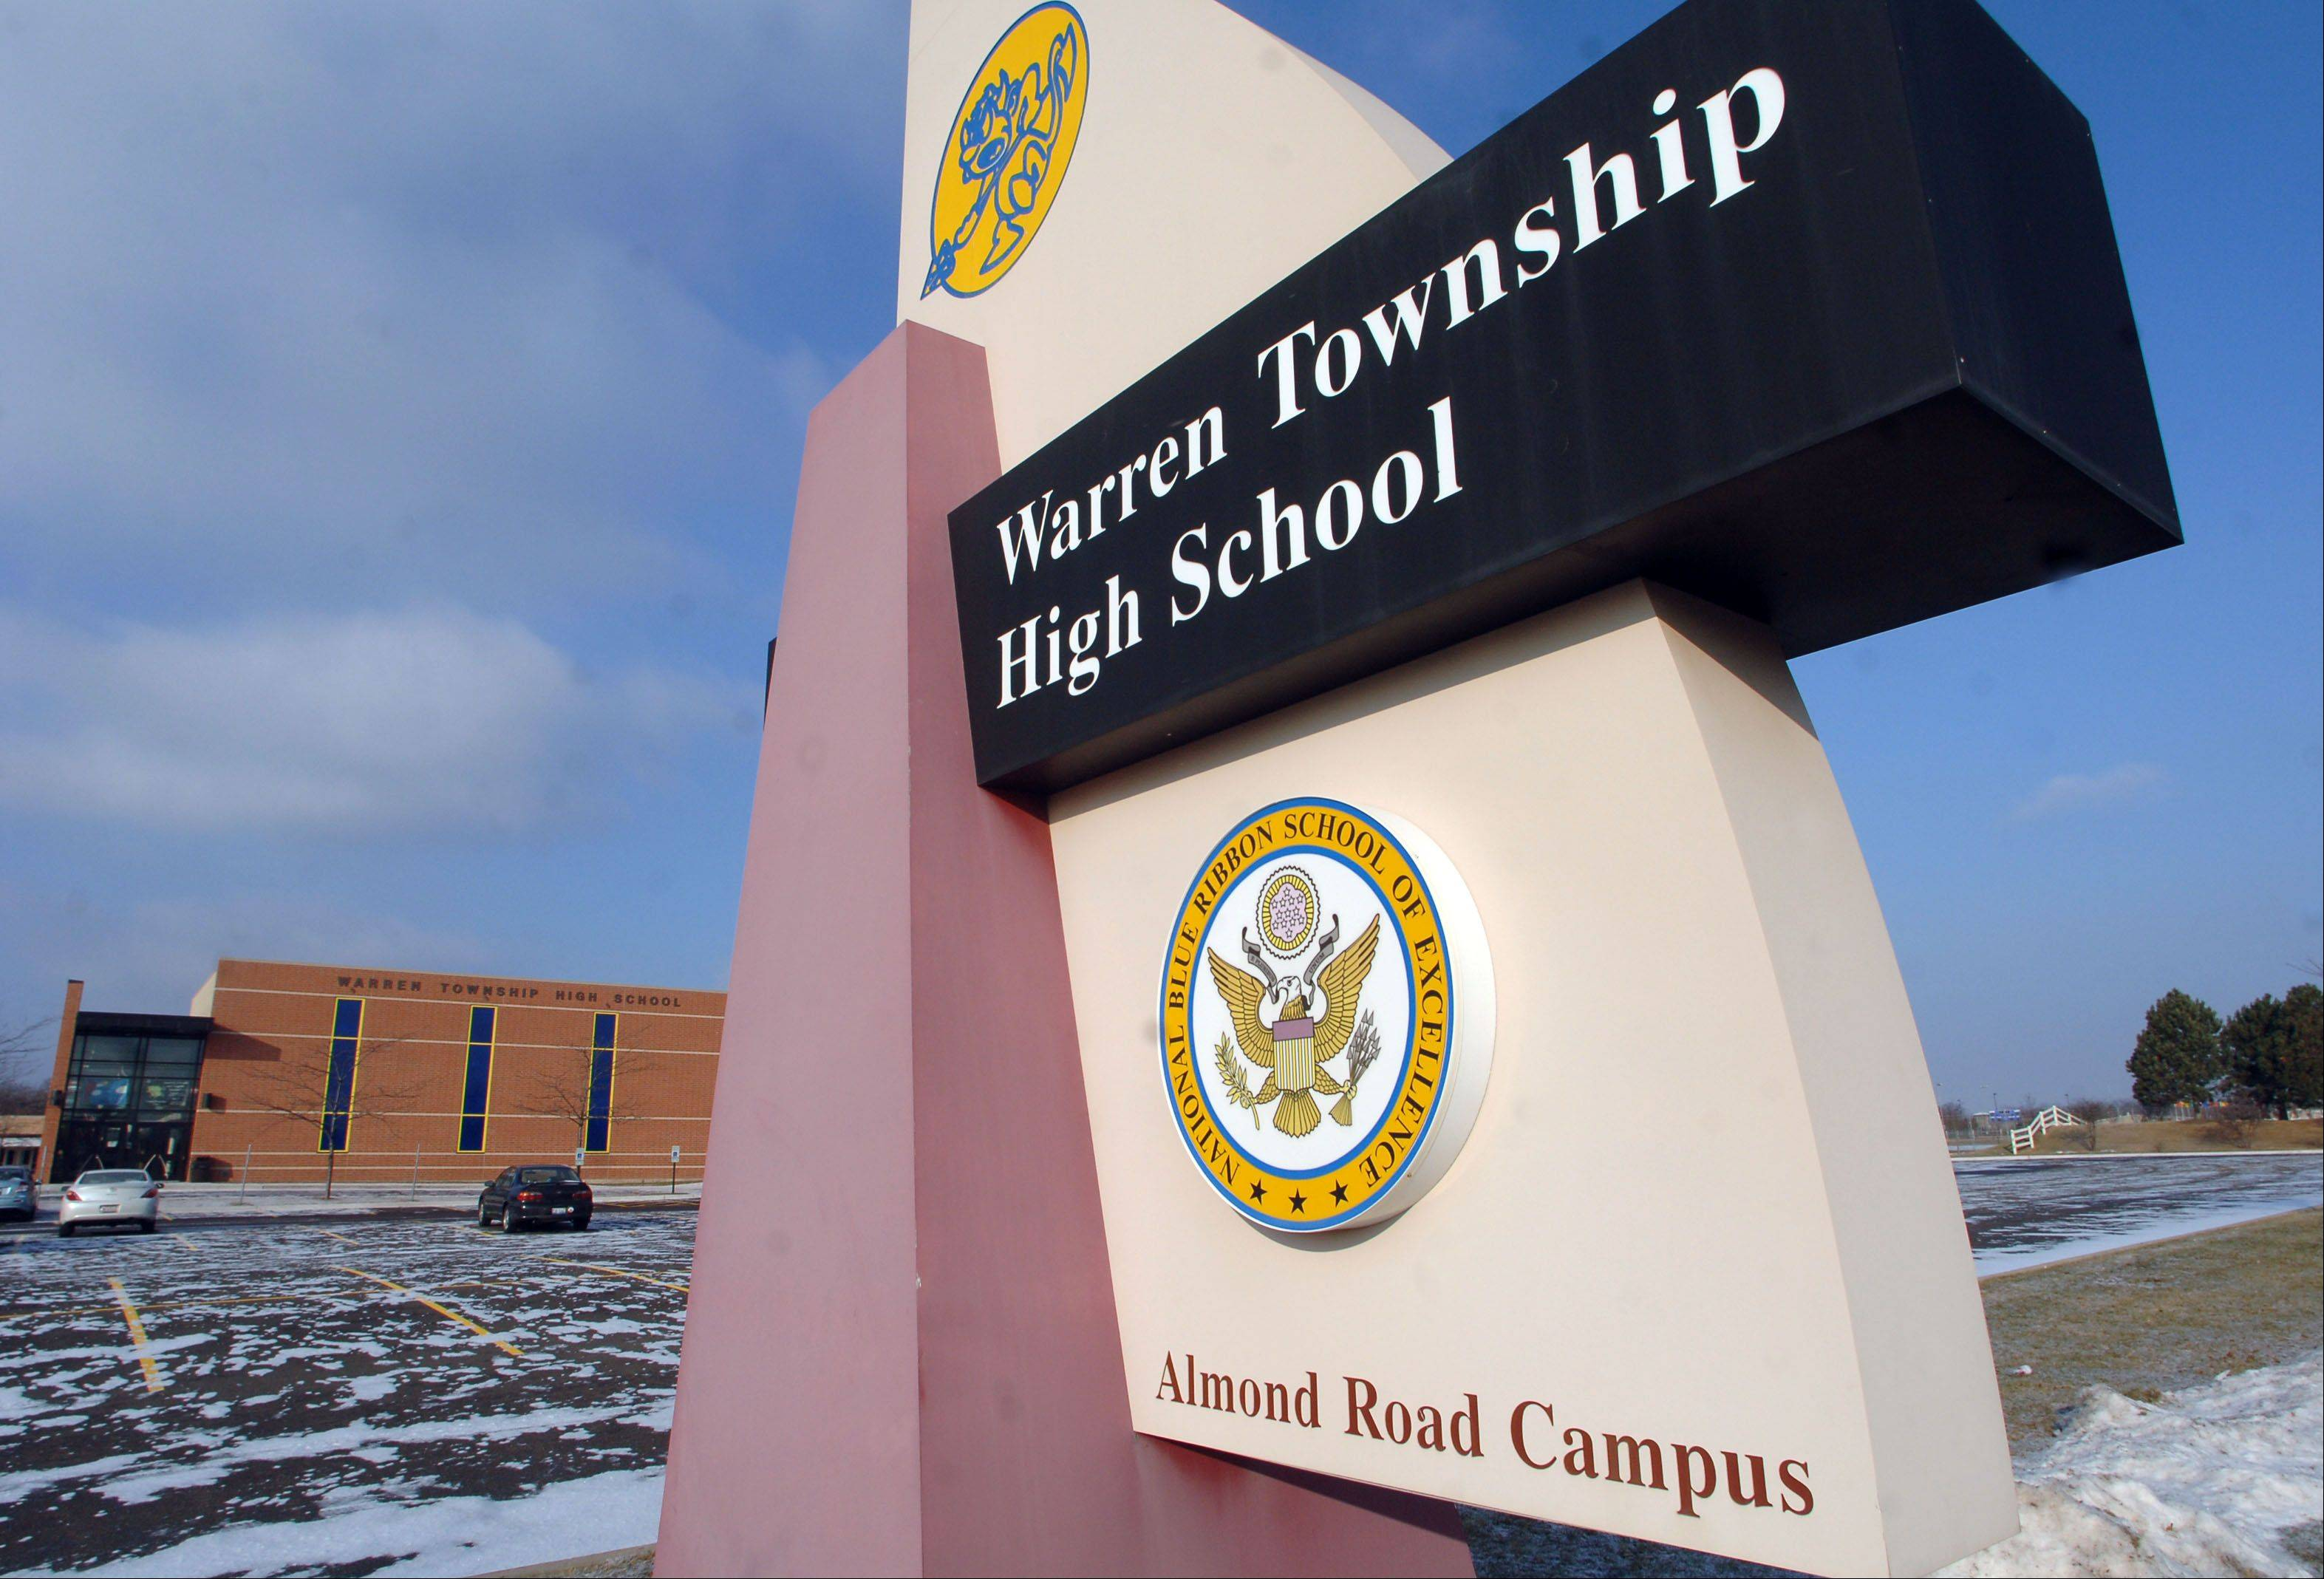 Warren Township High School in Gurnee stands to collect $50 for each new customer who signs up for an electricity provider promising rates cheaper than ComEd's at least until May.